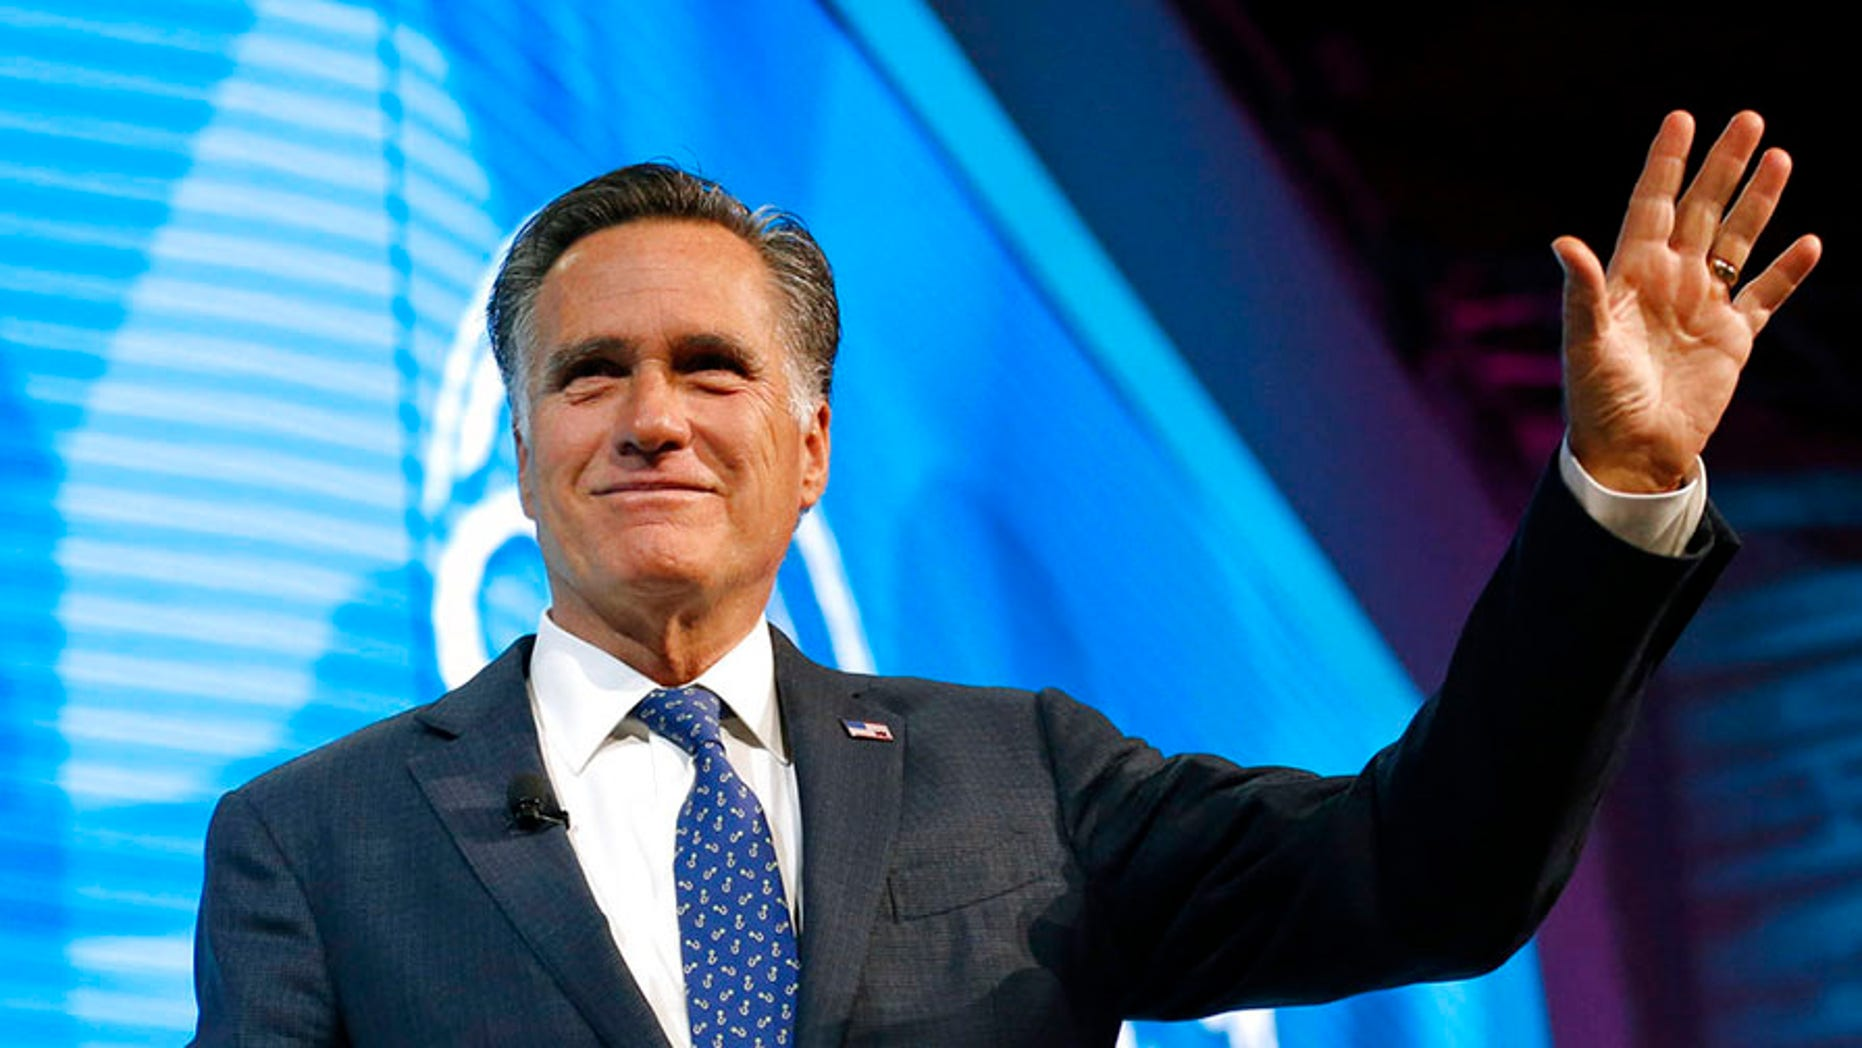 Mitt Romney is expected to announce his bid for the Senate on Friday.